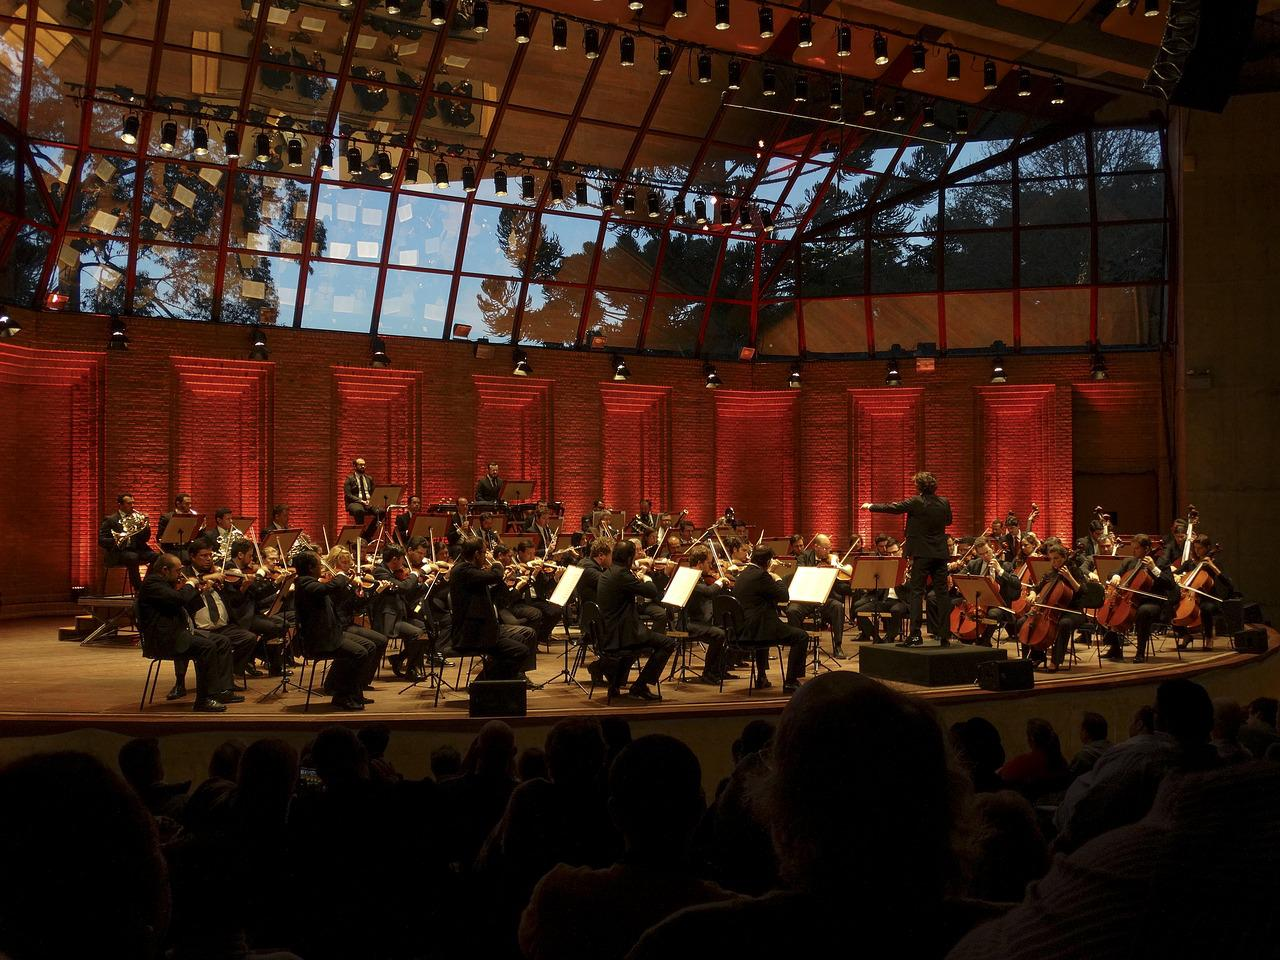 symphony orchestra ensemble musical performance